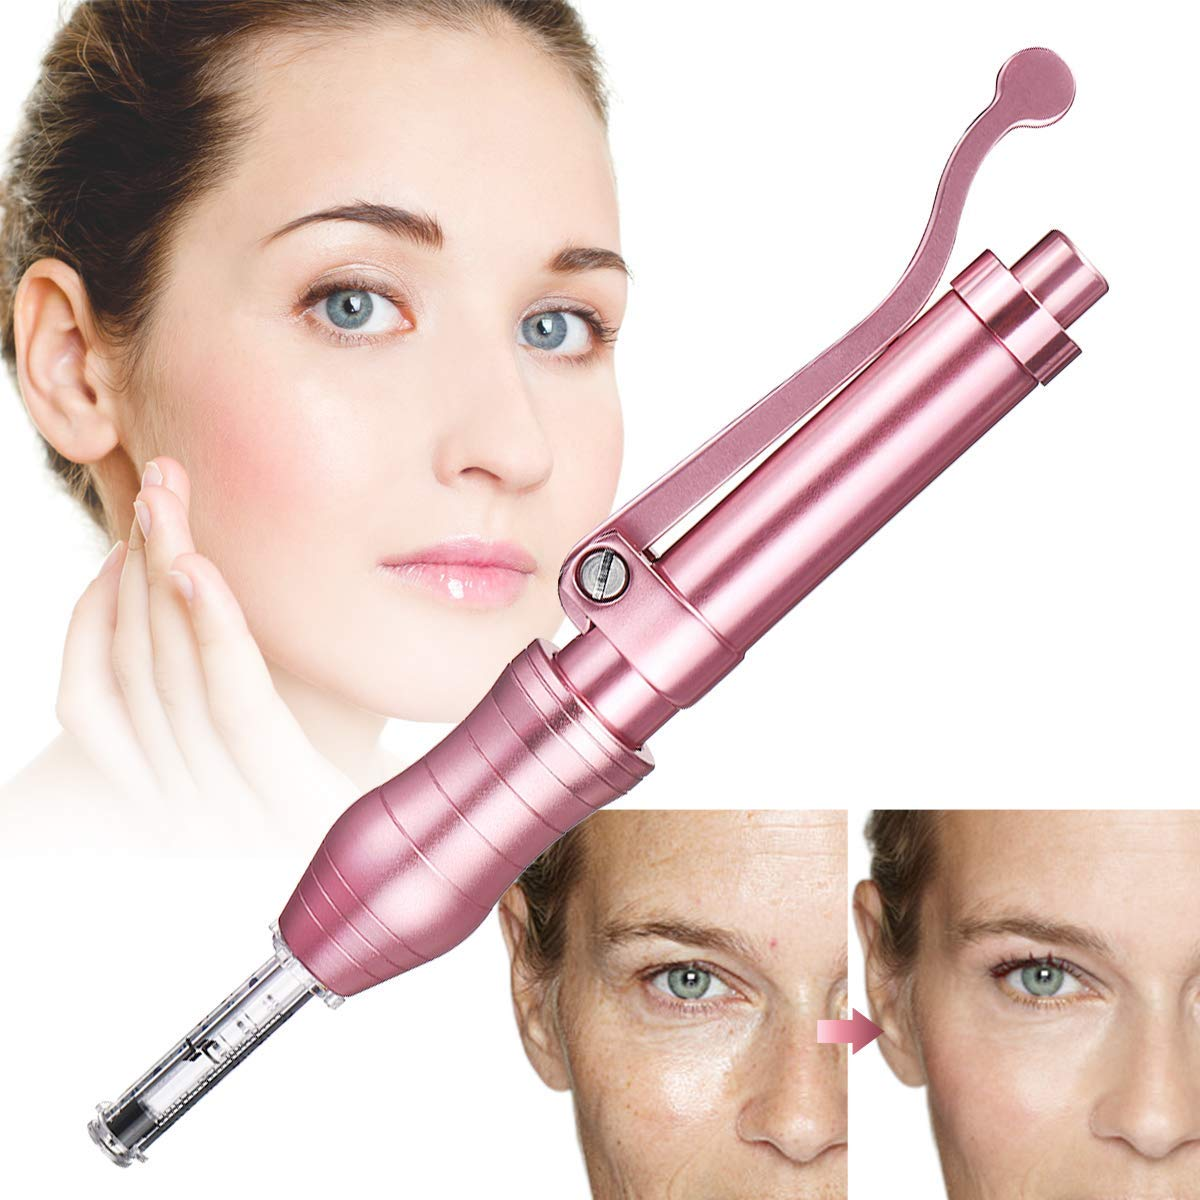 Hyaluron Injection Pen, Restore Skin Elasticity, Deep Replenishment And Rich Nourishment, Helps to Reduce Blemishes, Wrinkles and Marks (with 2 Ampoules)